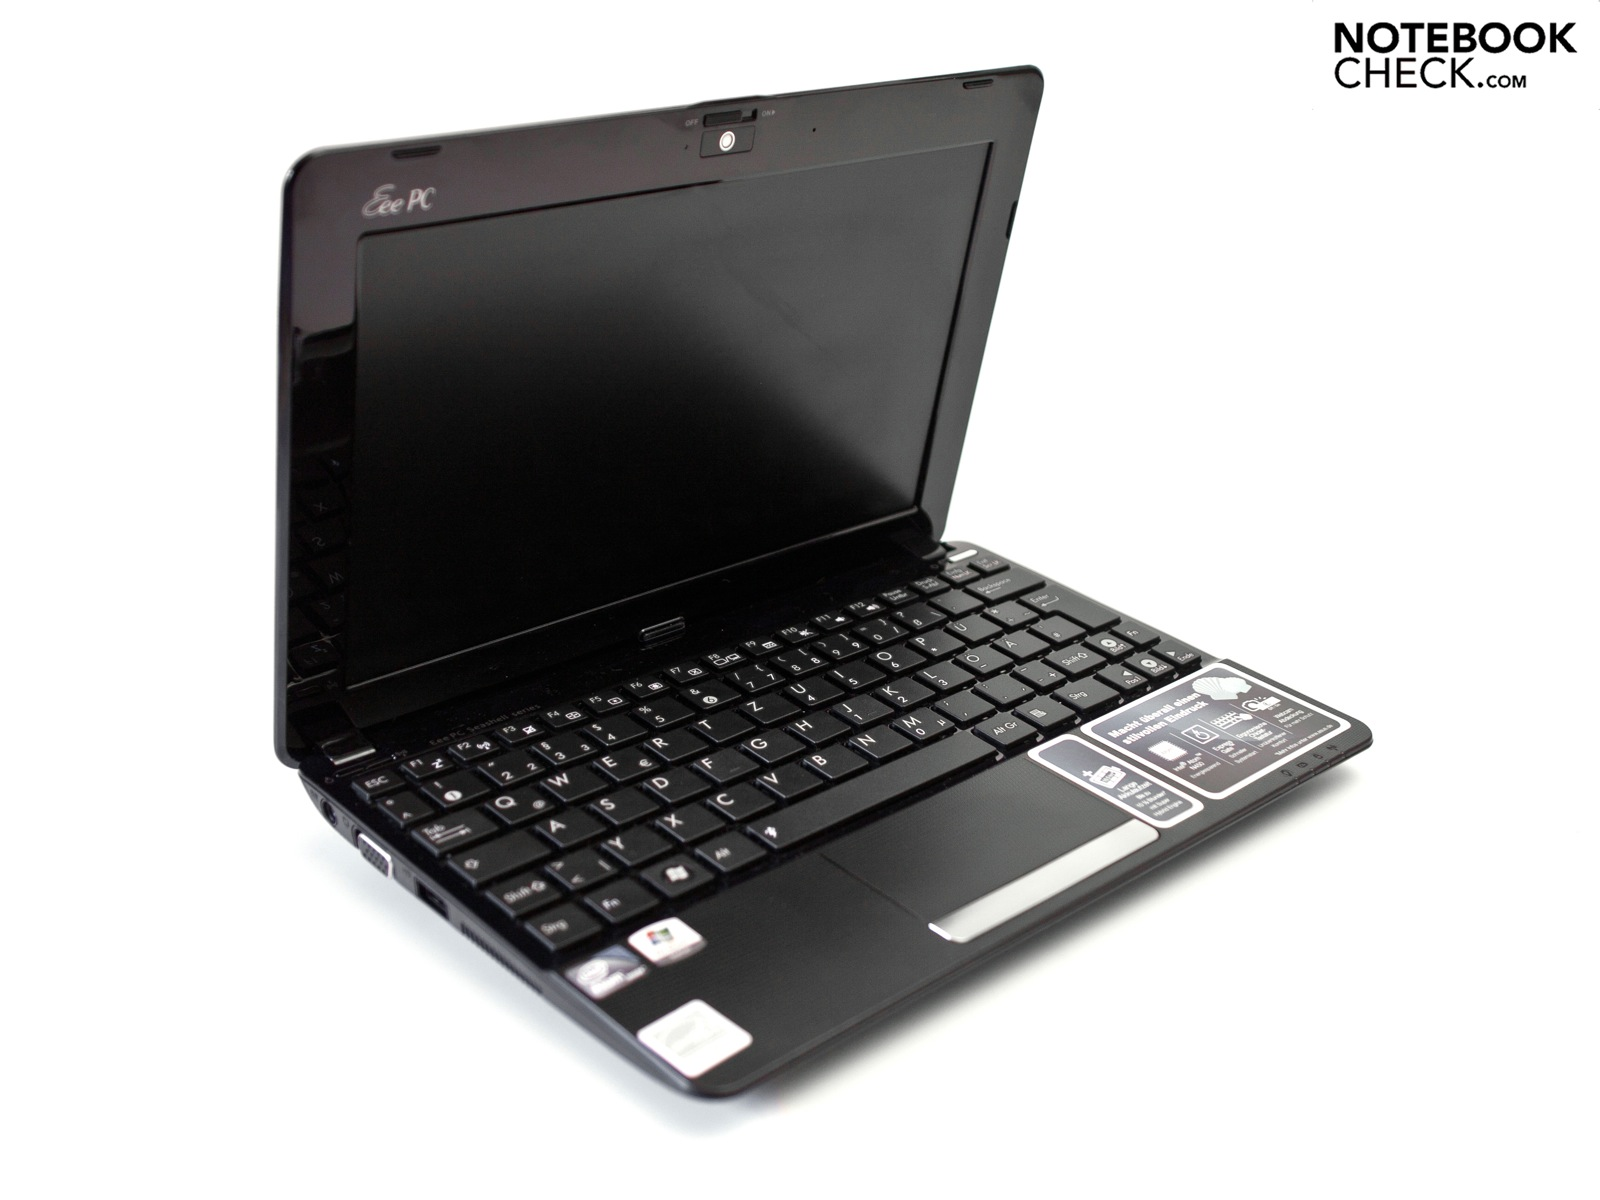 NEW DRIVER: ASUS EEE PC 1015P USB 3.0